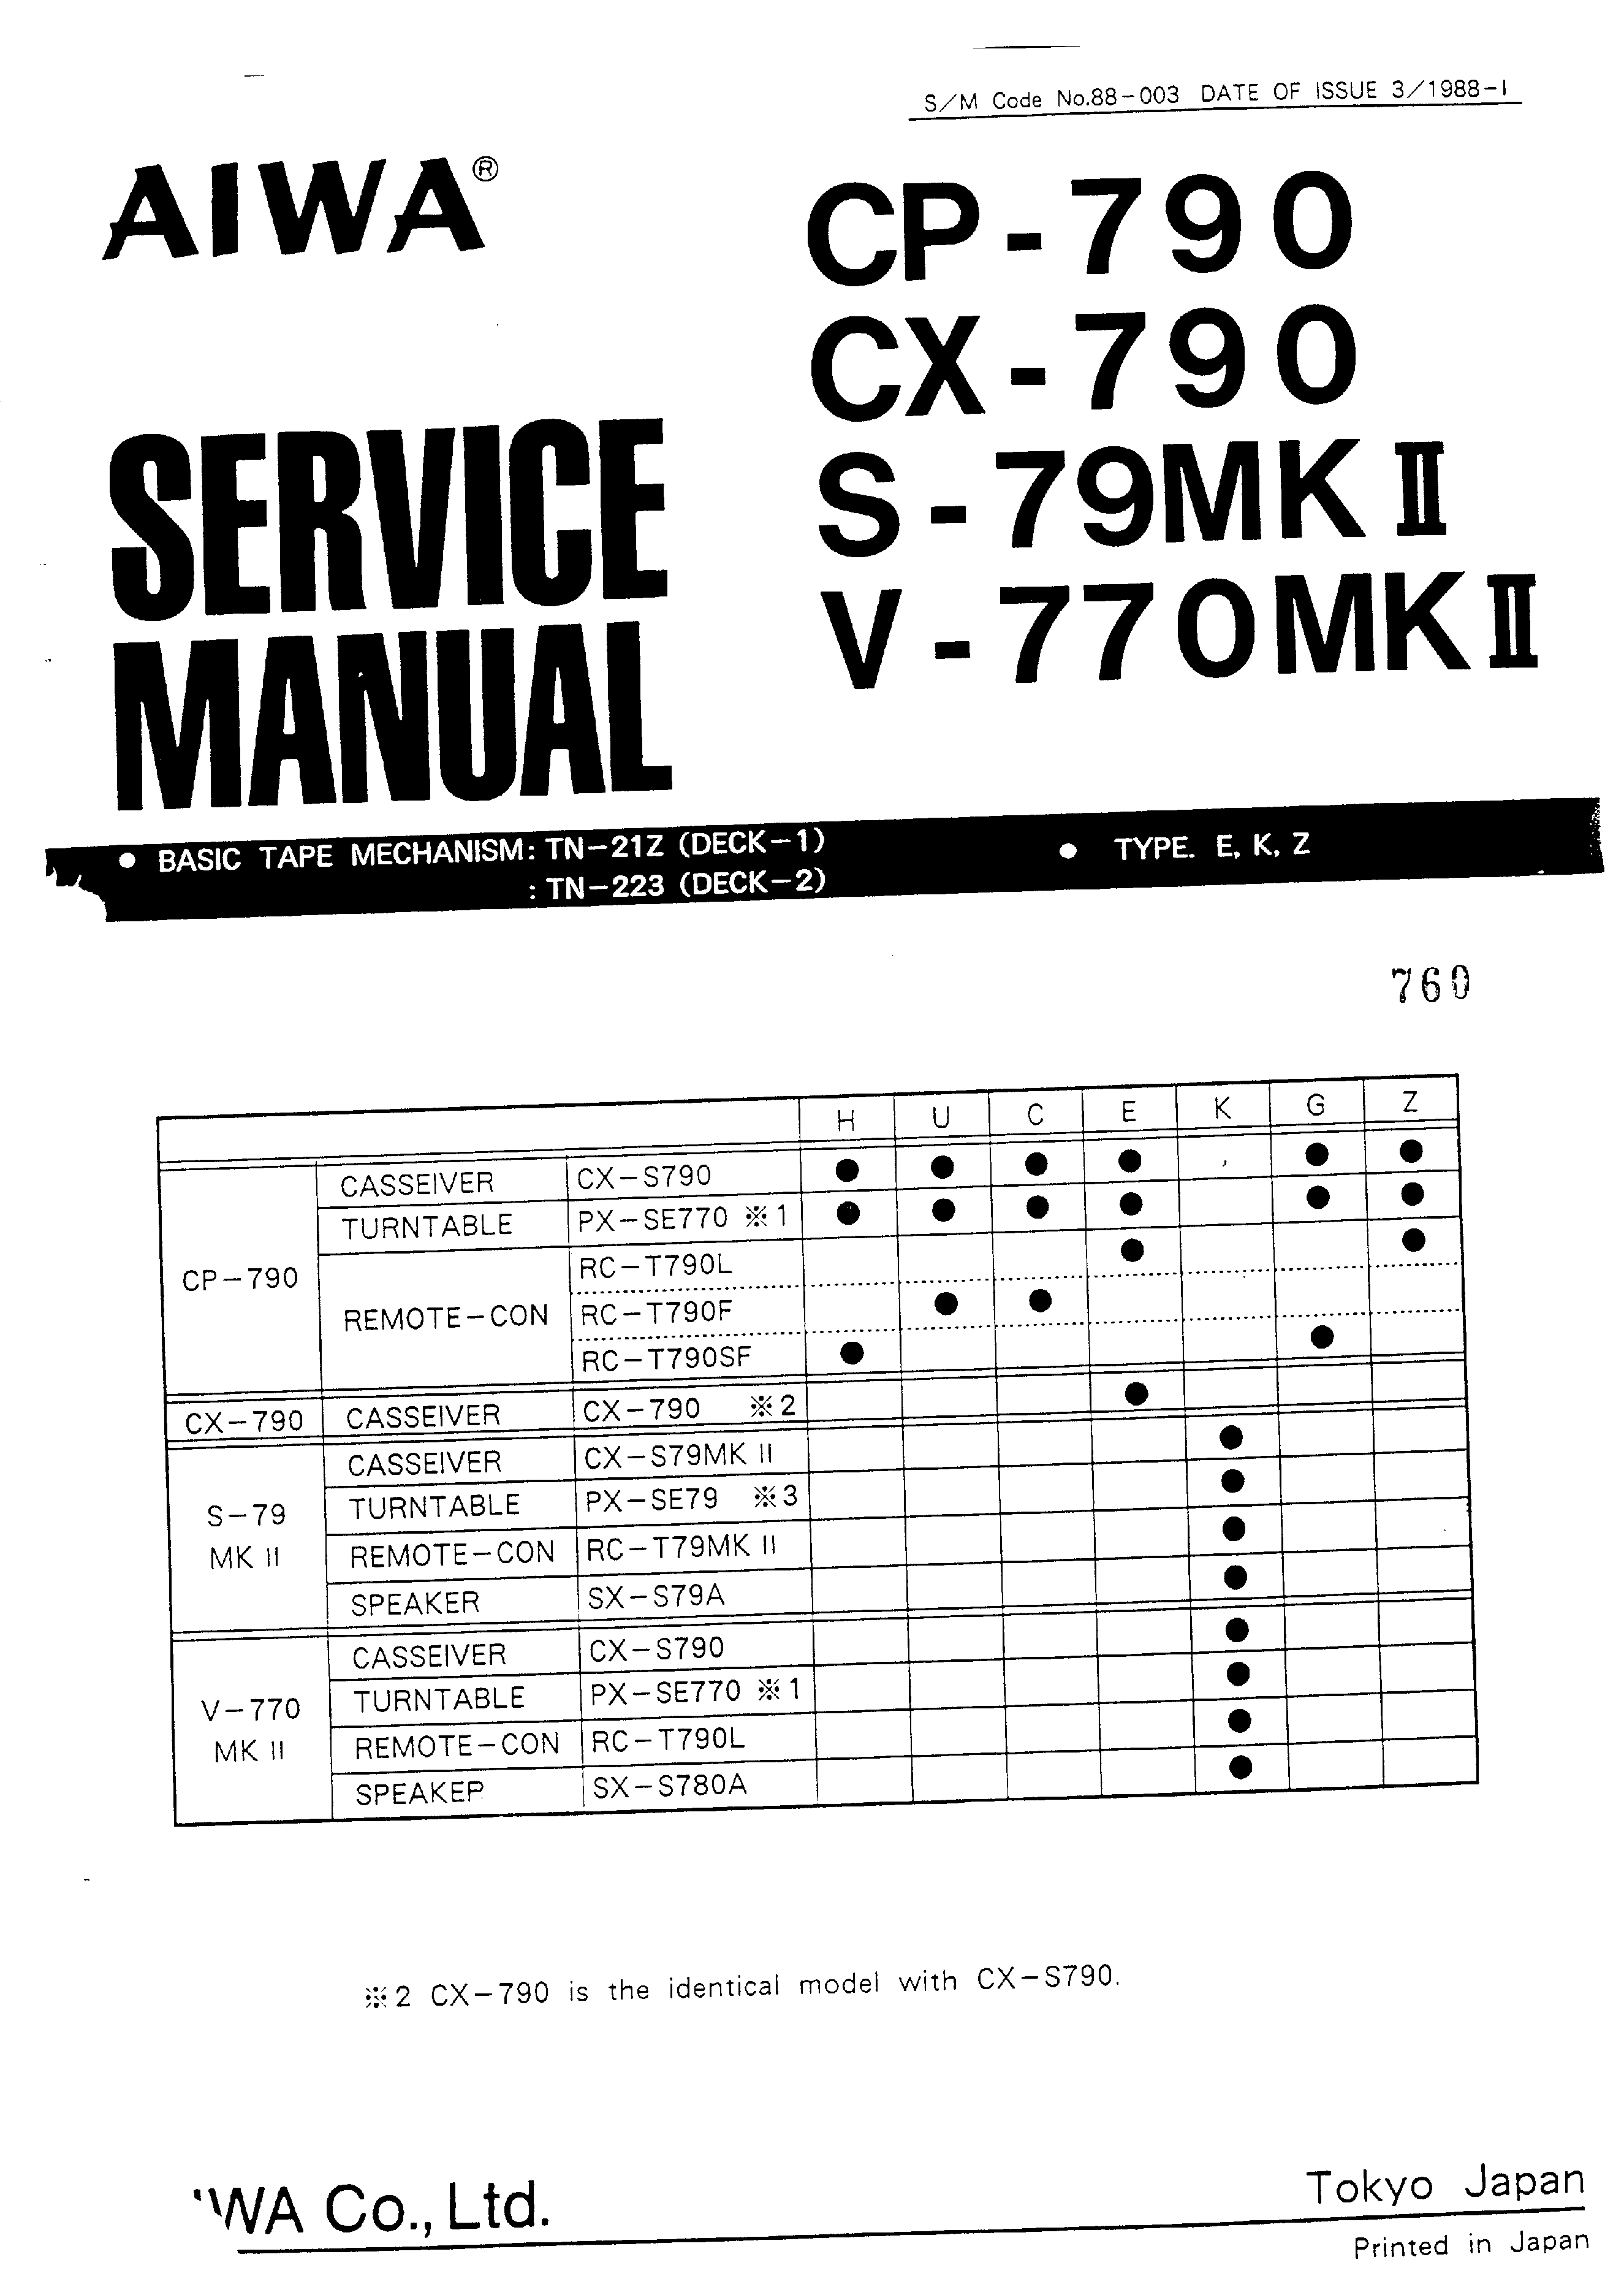 download free aiwa hv-mx1 service manual software